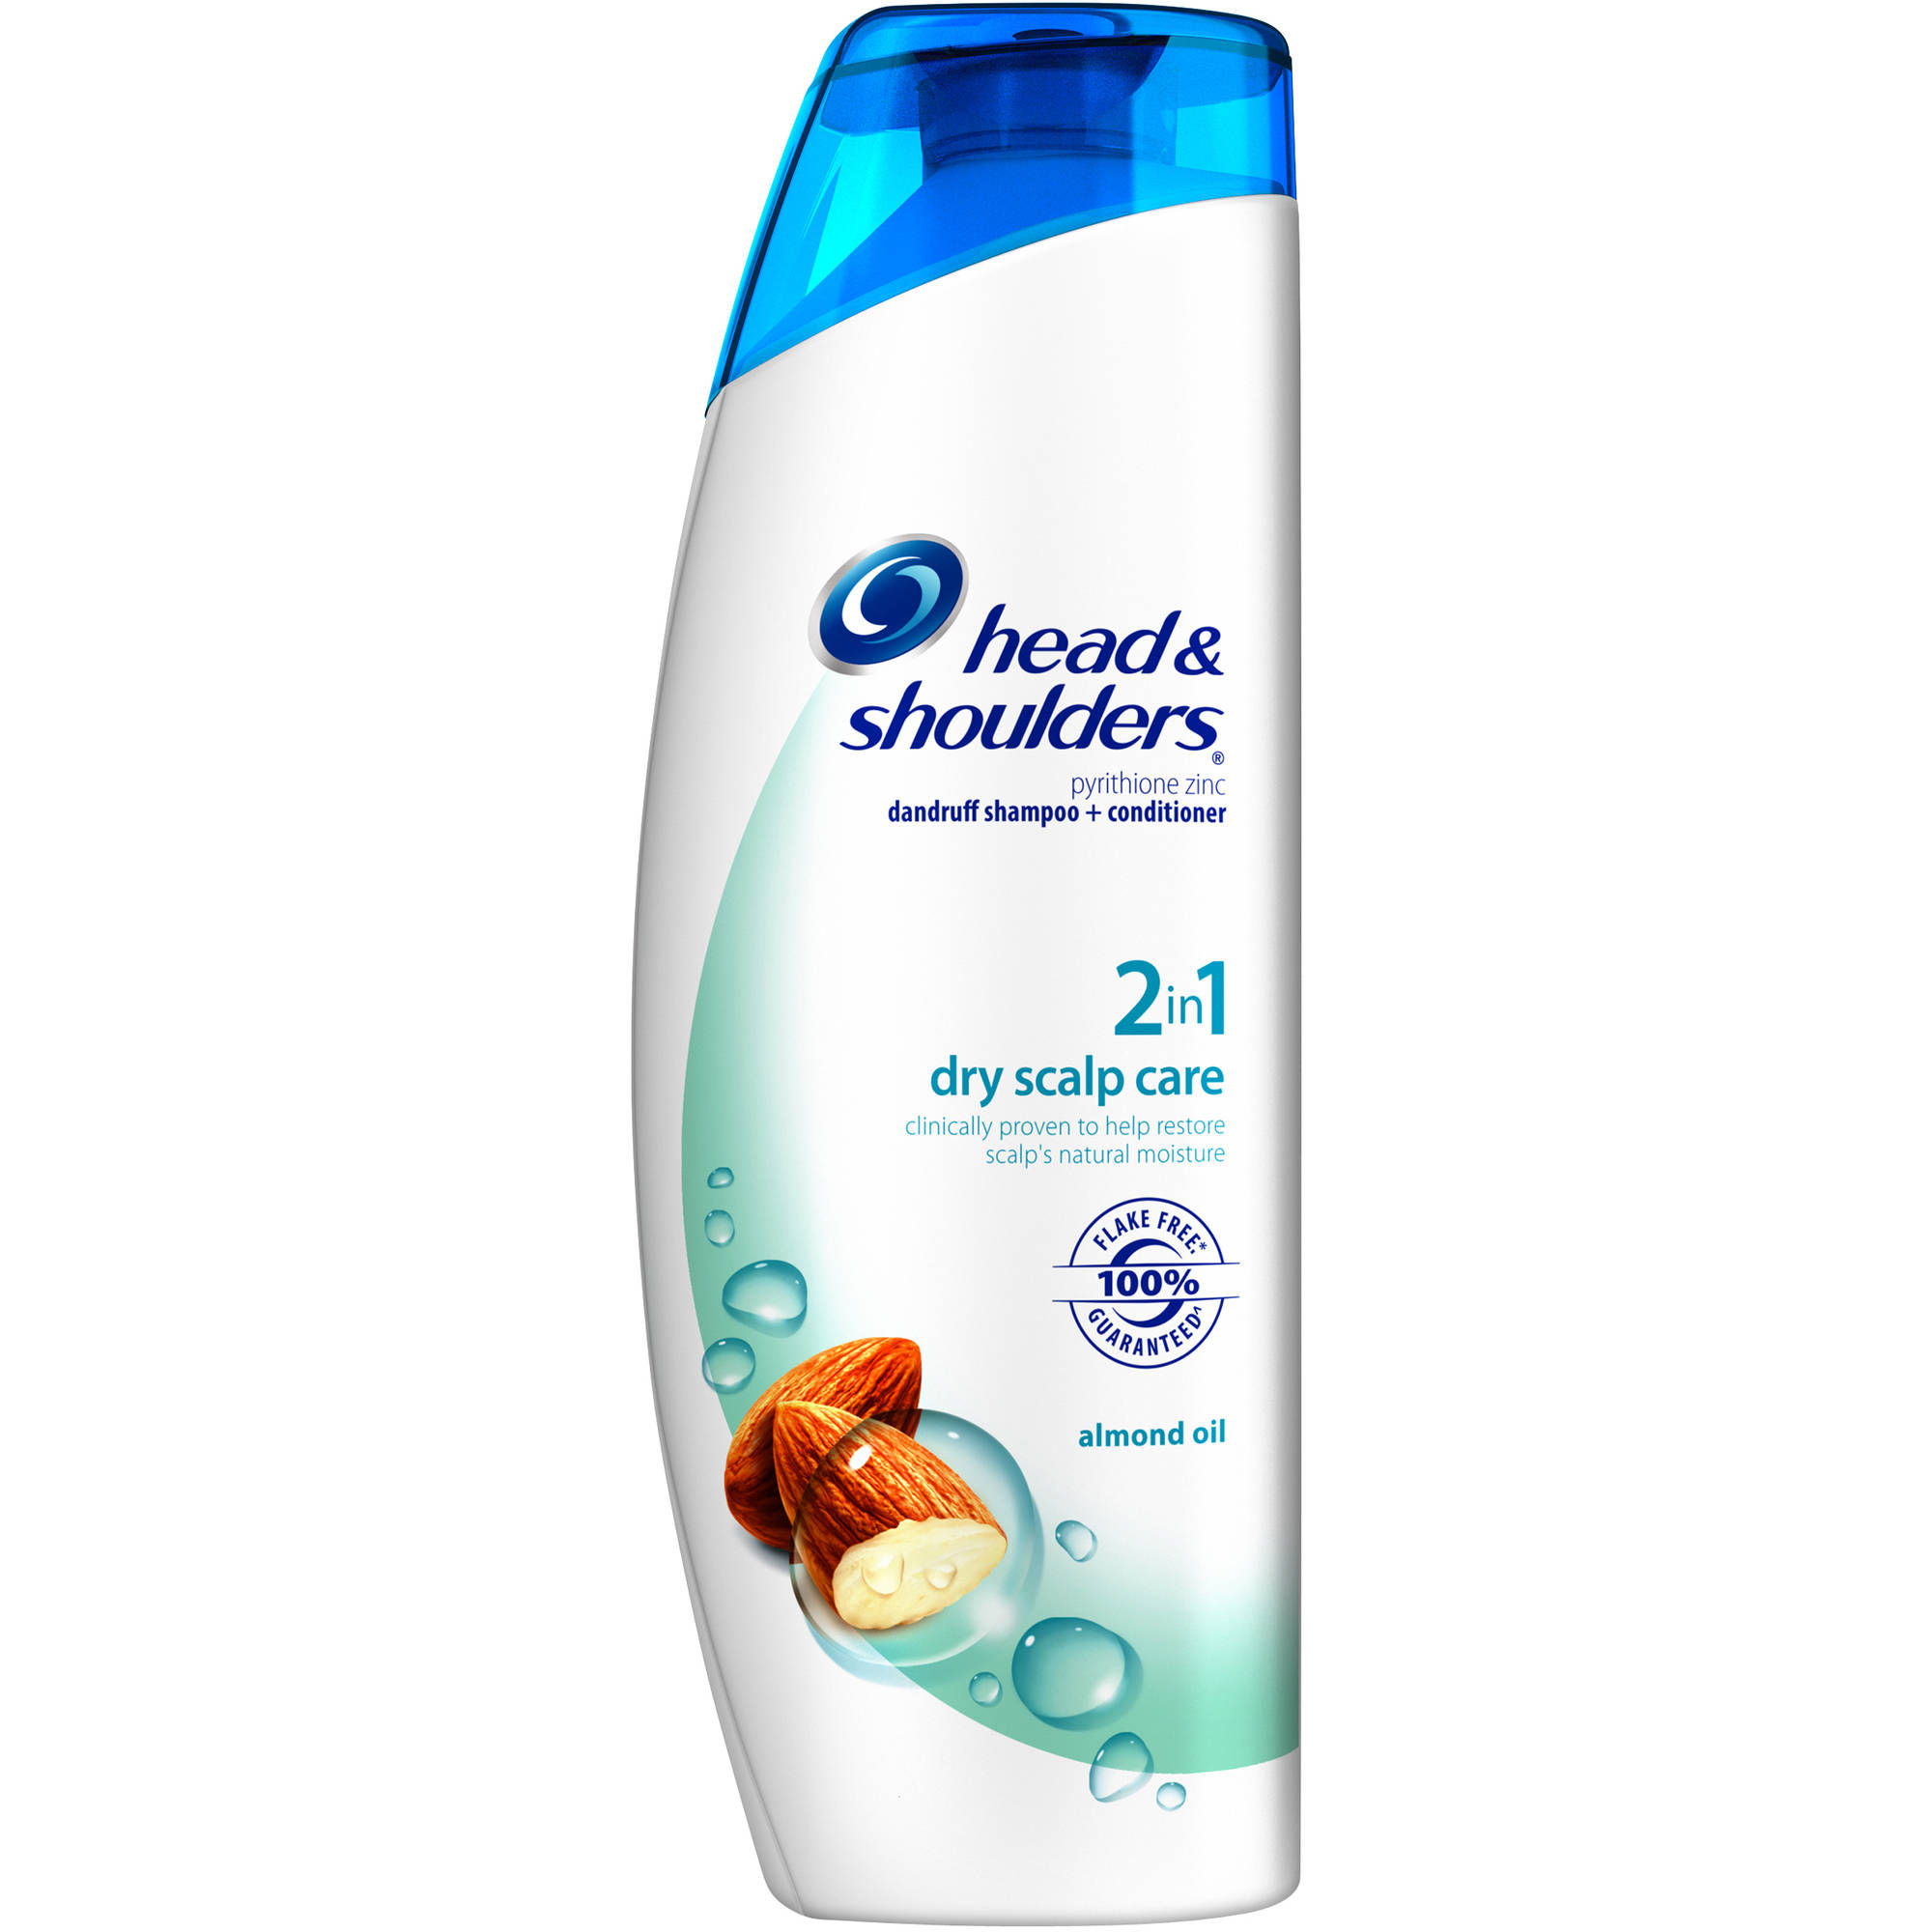 Head & Shoulders Dry Scalp Care Almond Oil Dandruff Shampoo + Conditioner, 33.8 fl oz